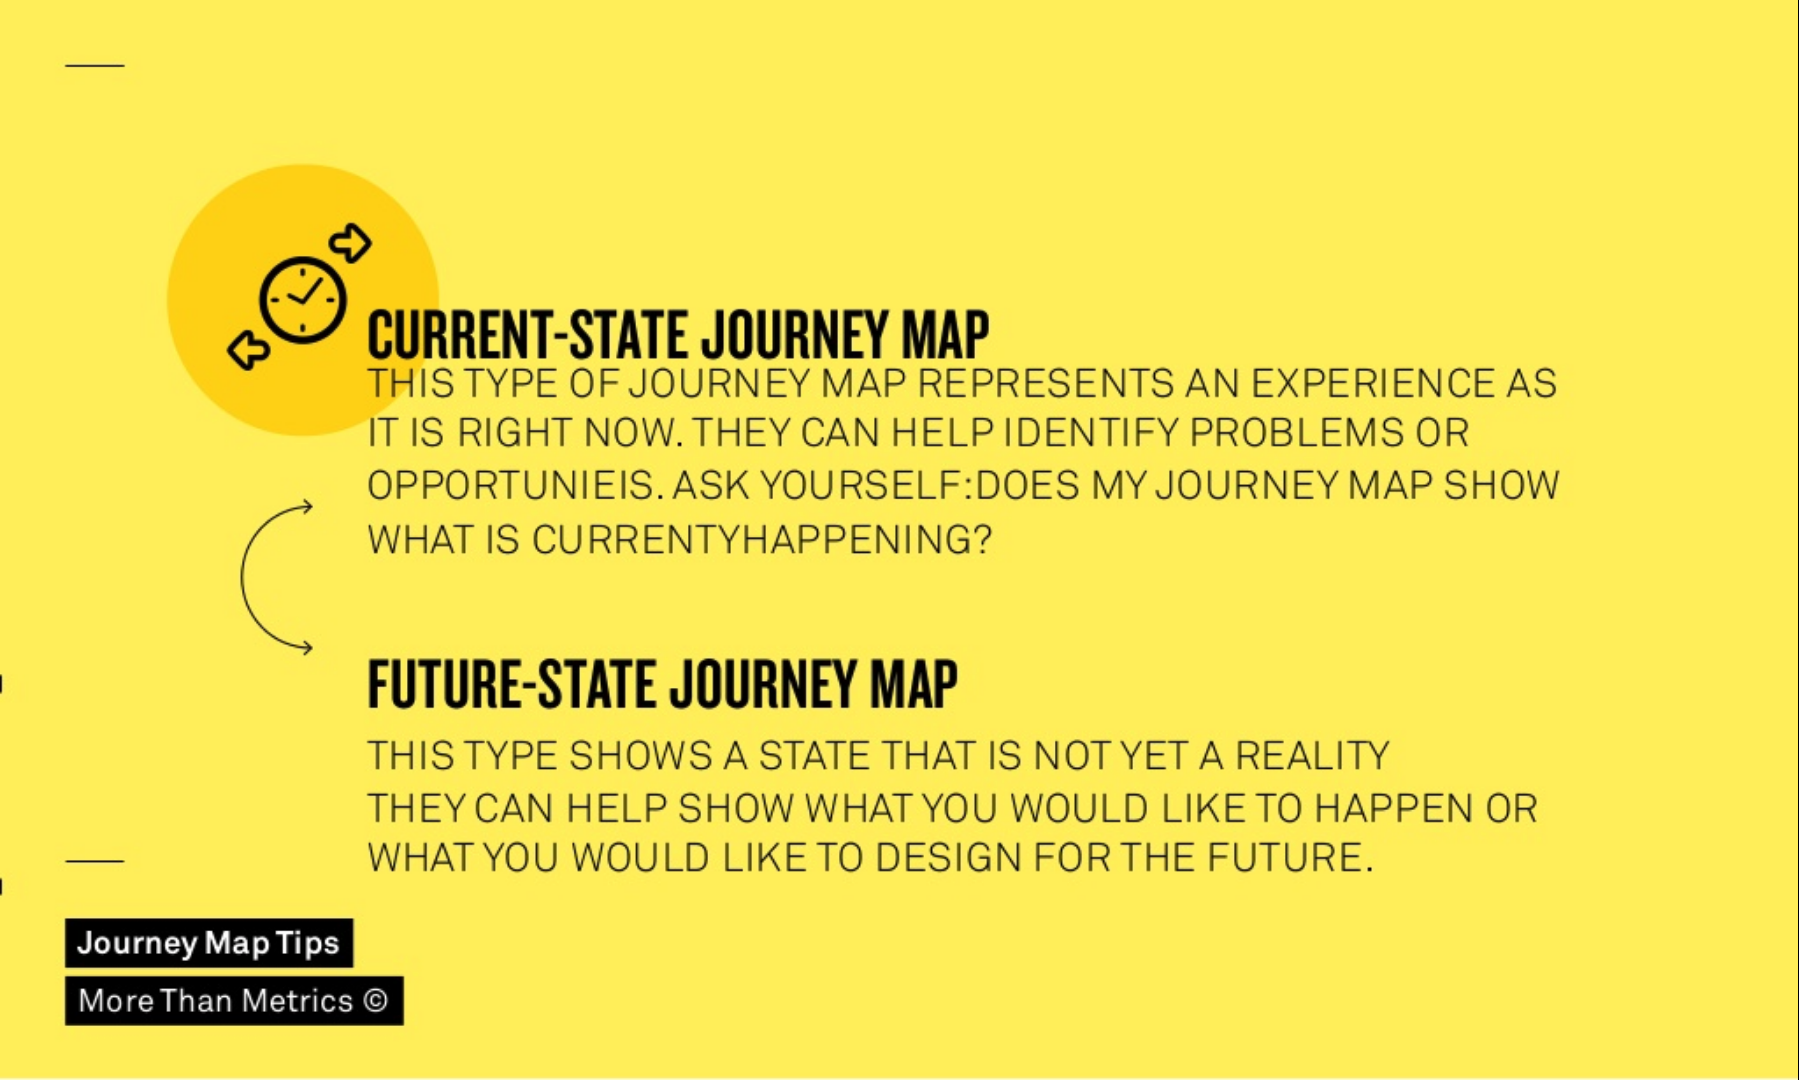 Current-state journey maps represent a current experience and help to identify problems of opportunities. Future-state journey maps show a potential future reality and can help visualize it.